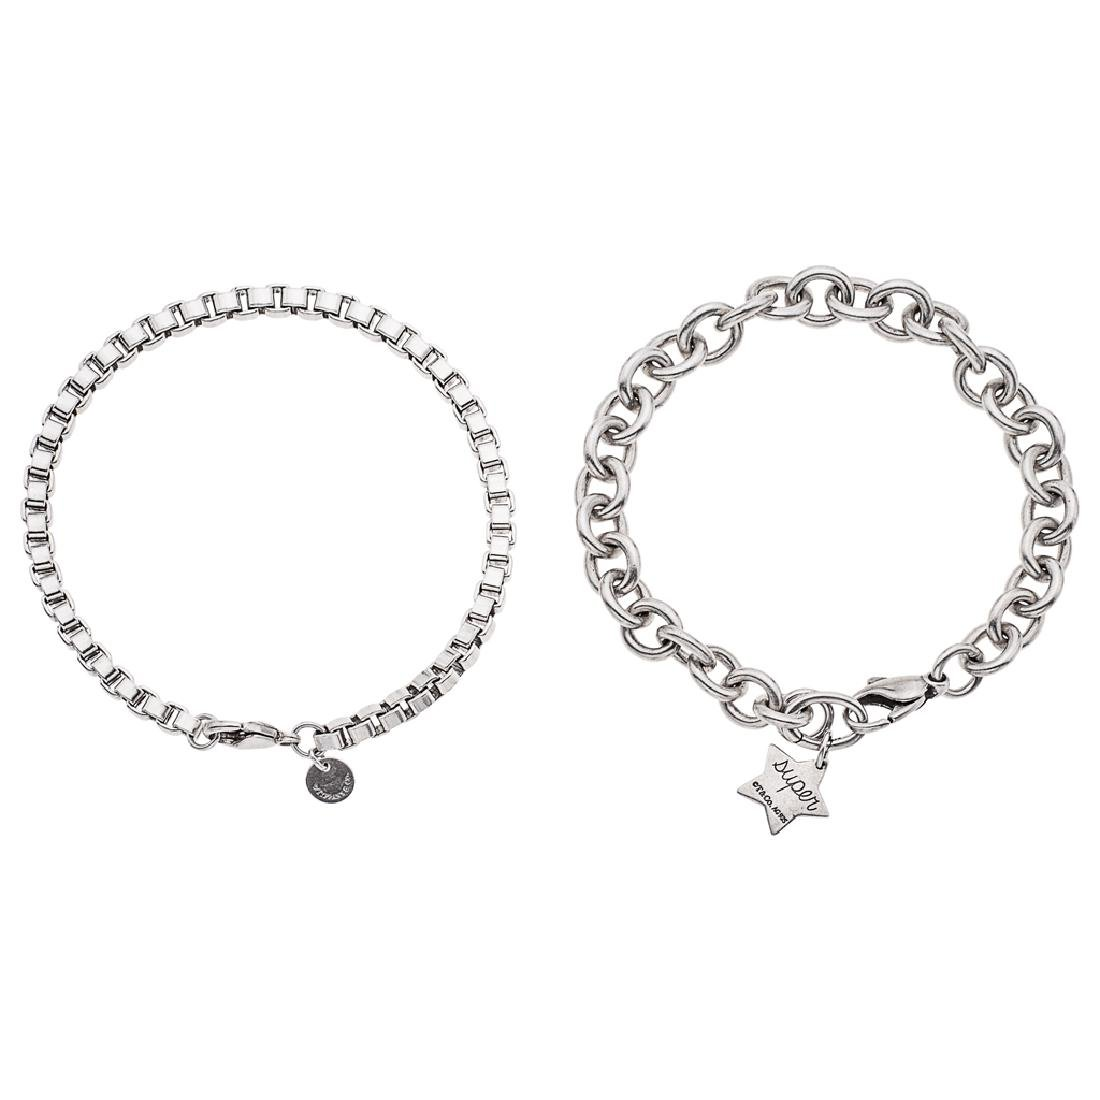 Two TIFFANY & CO. sterling silver bracelets. Weight: